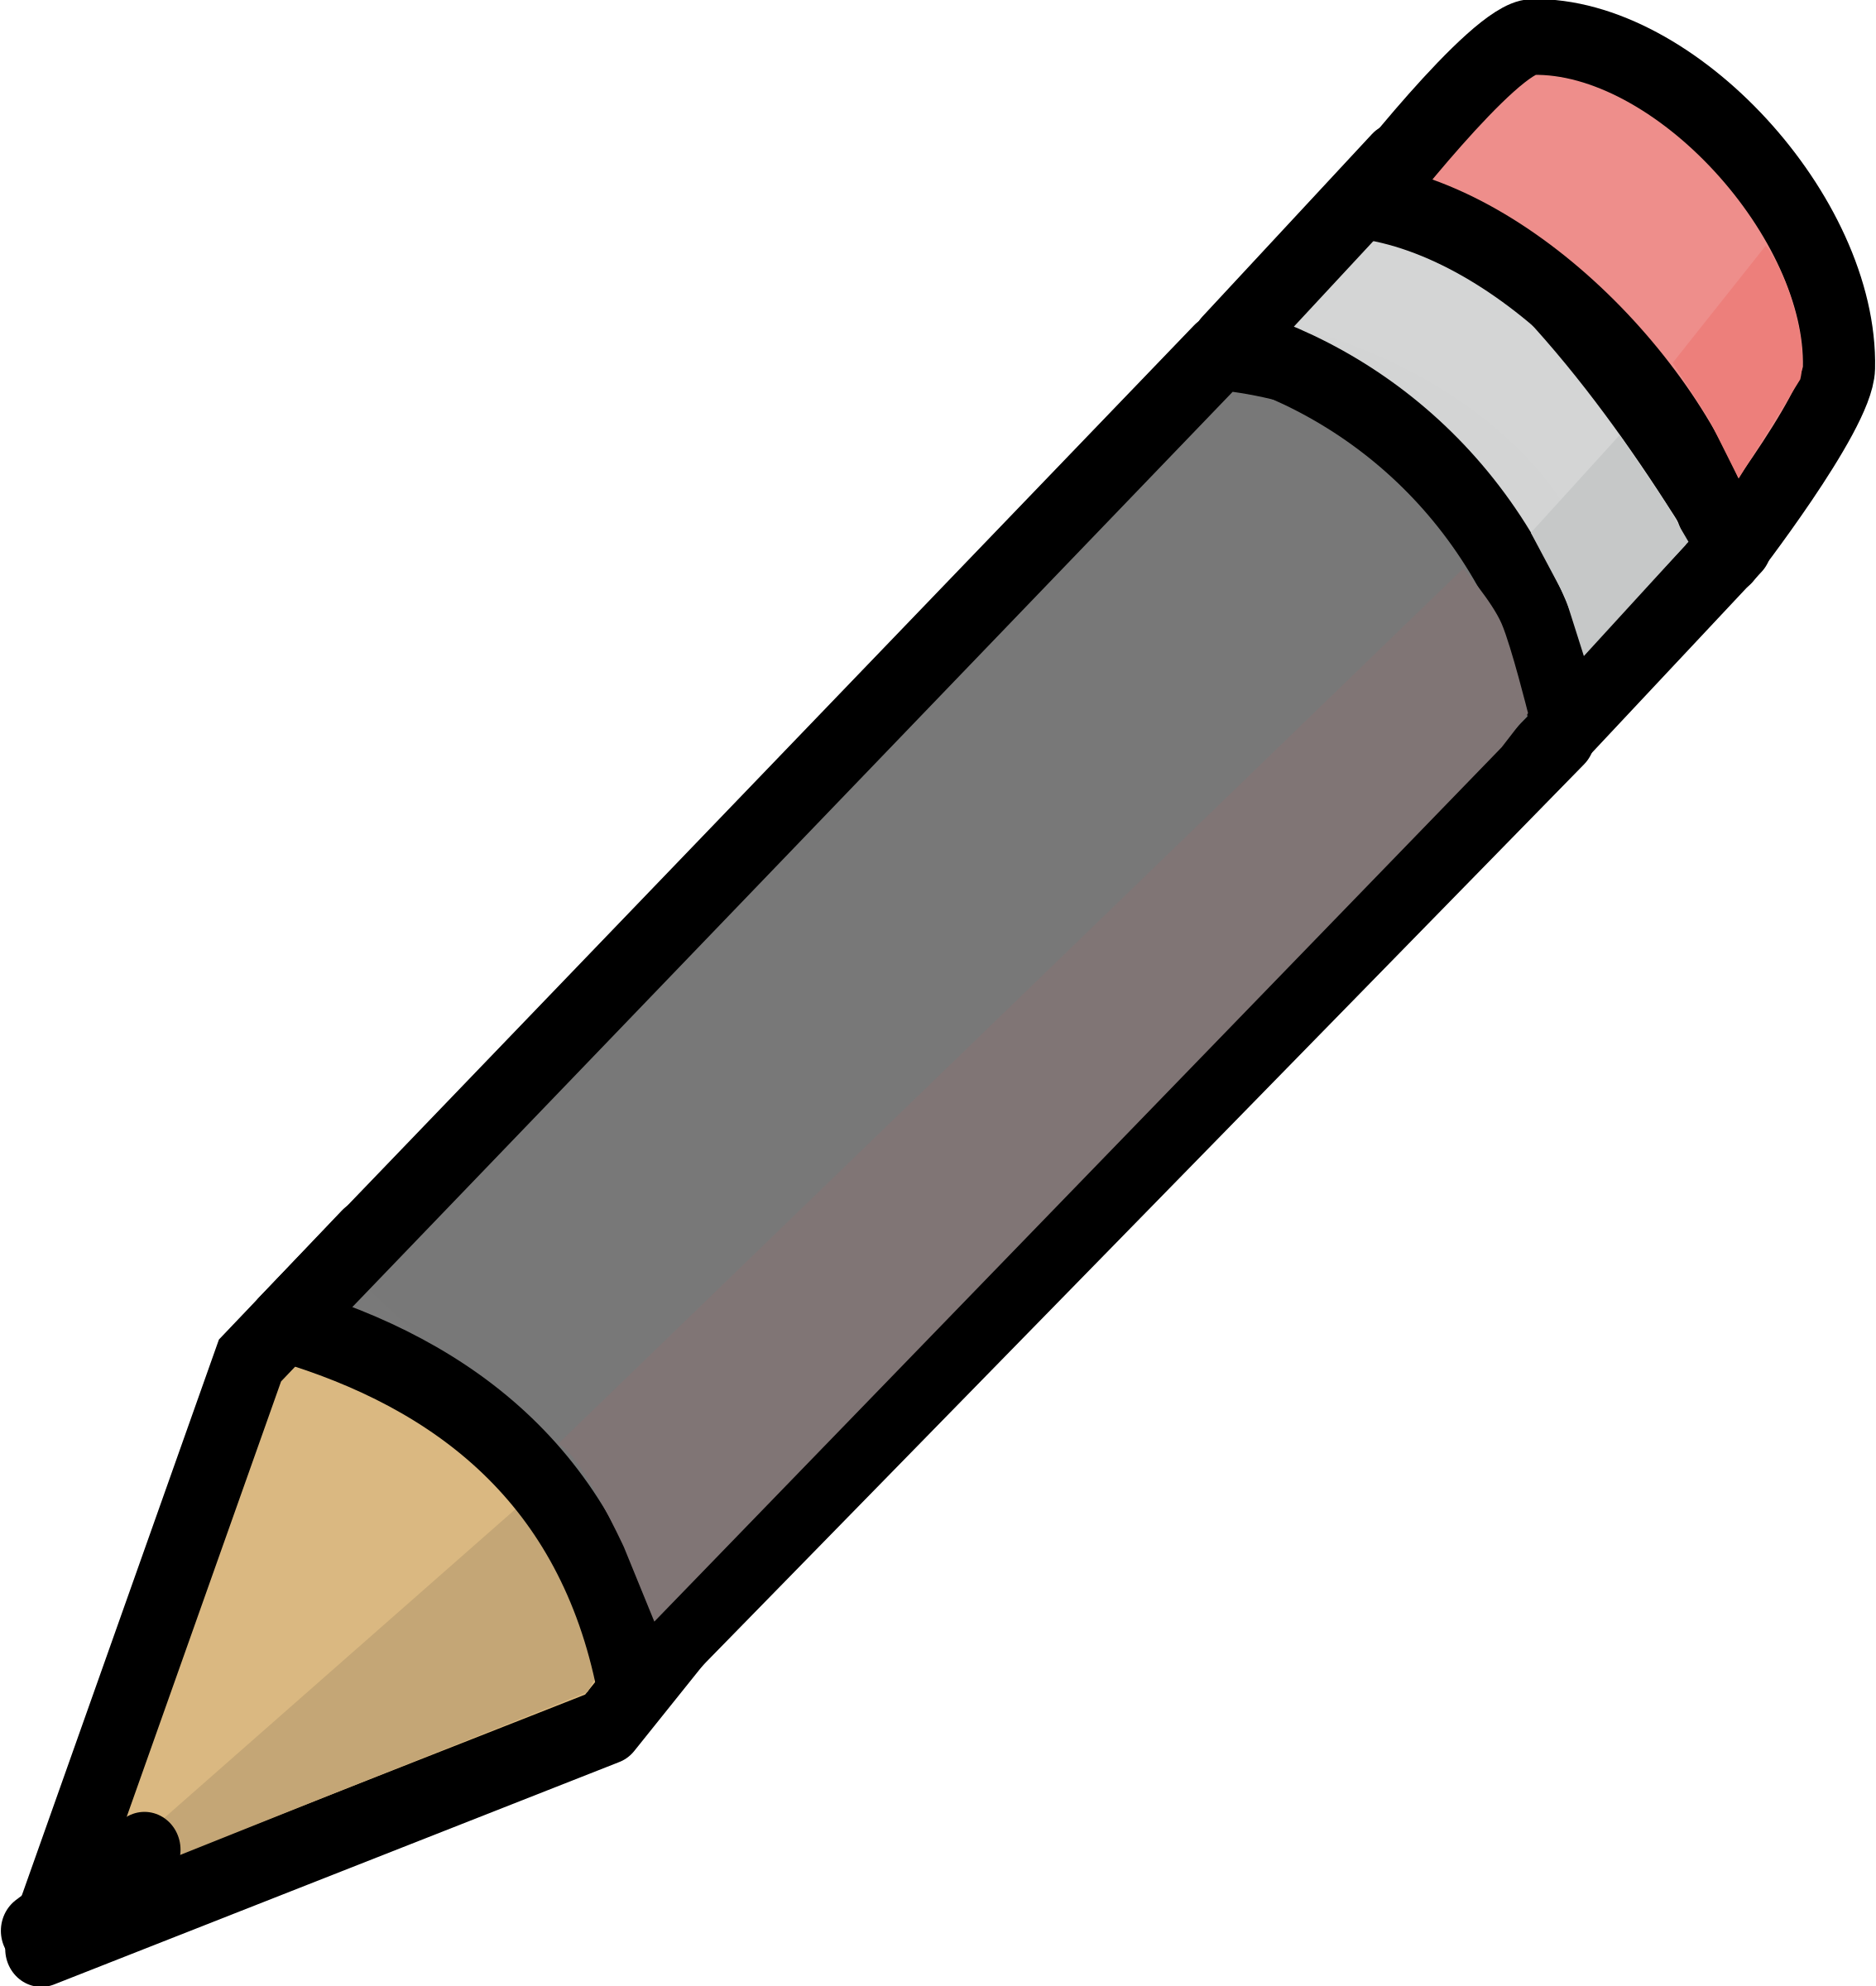 Pencil clipart bin. Gray icon icons png